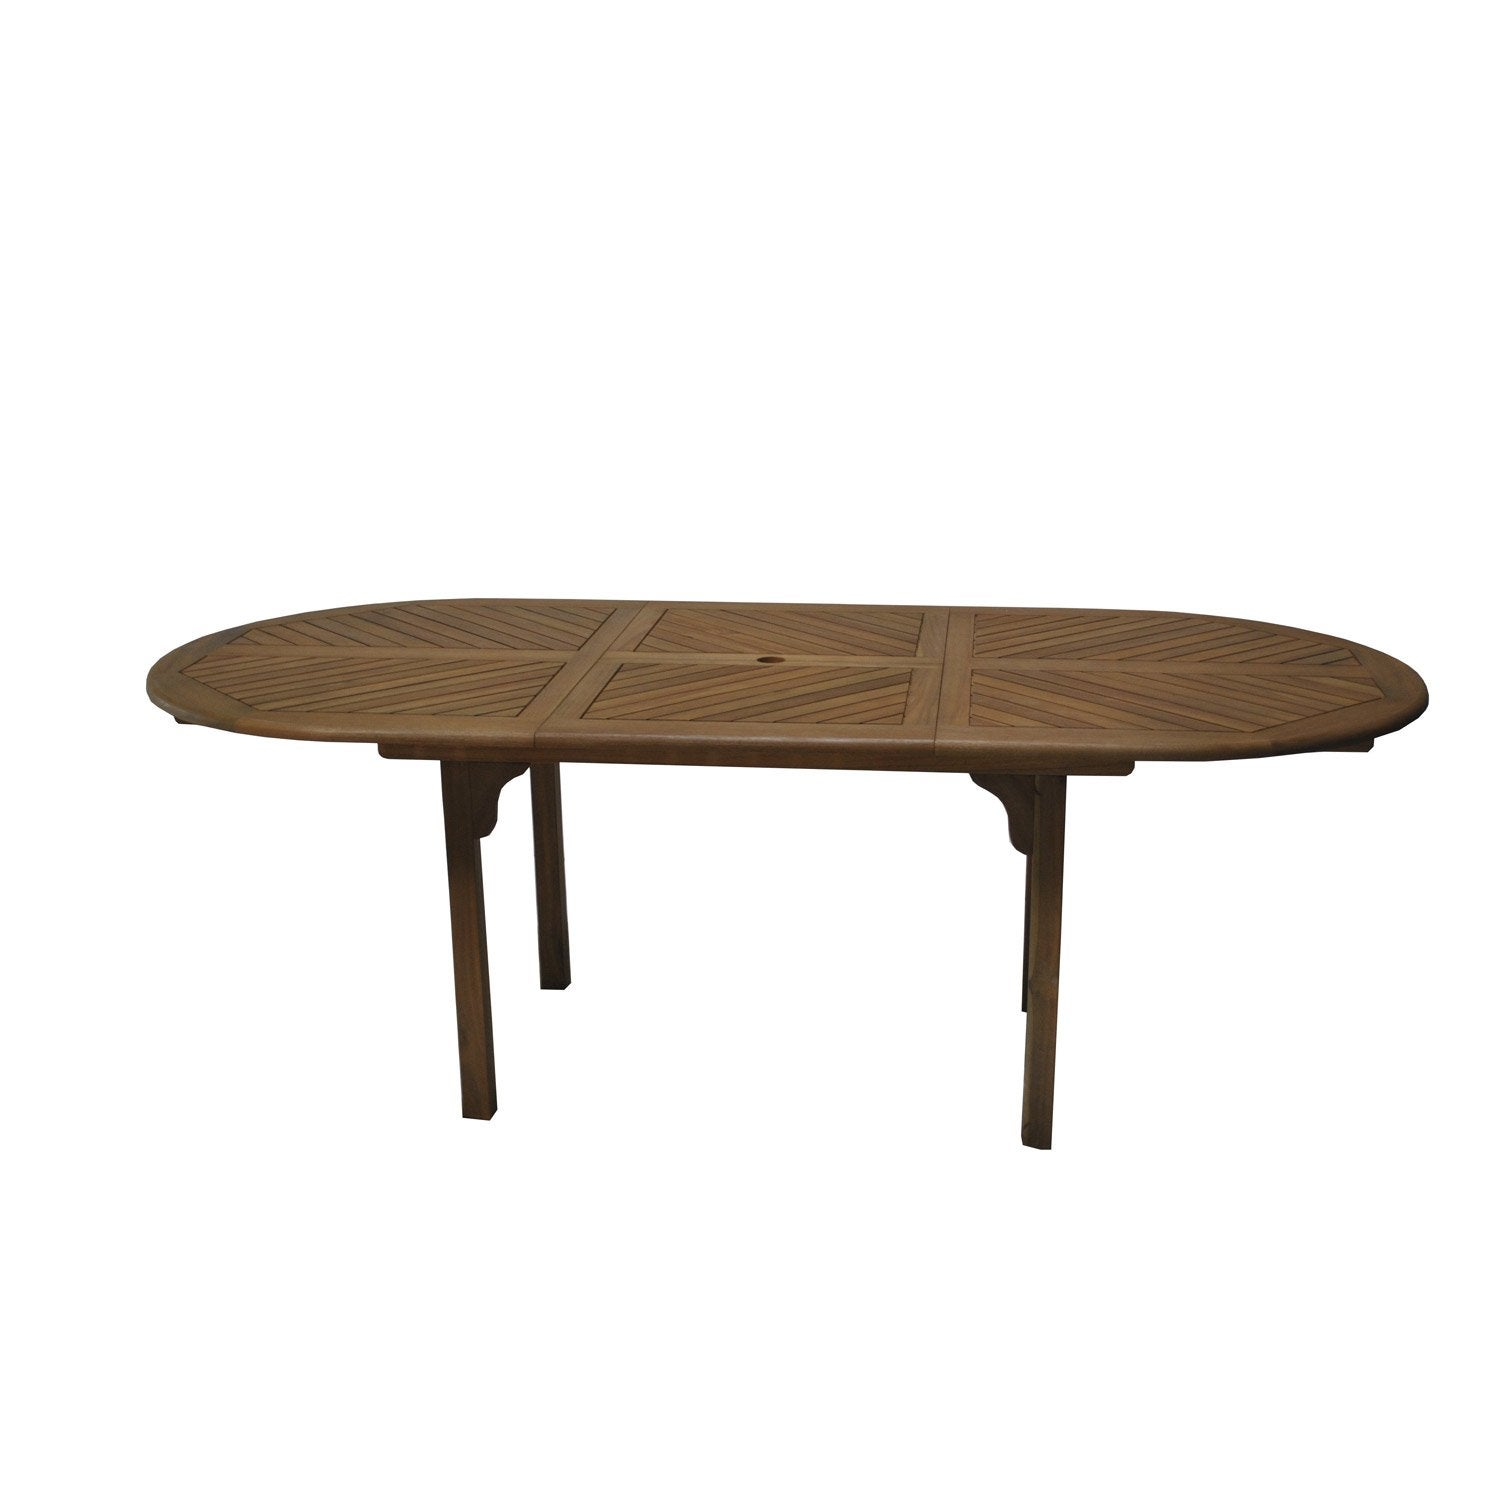 Table basse teck leroy merlin for Meuble jardin leroy merlin